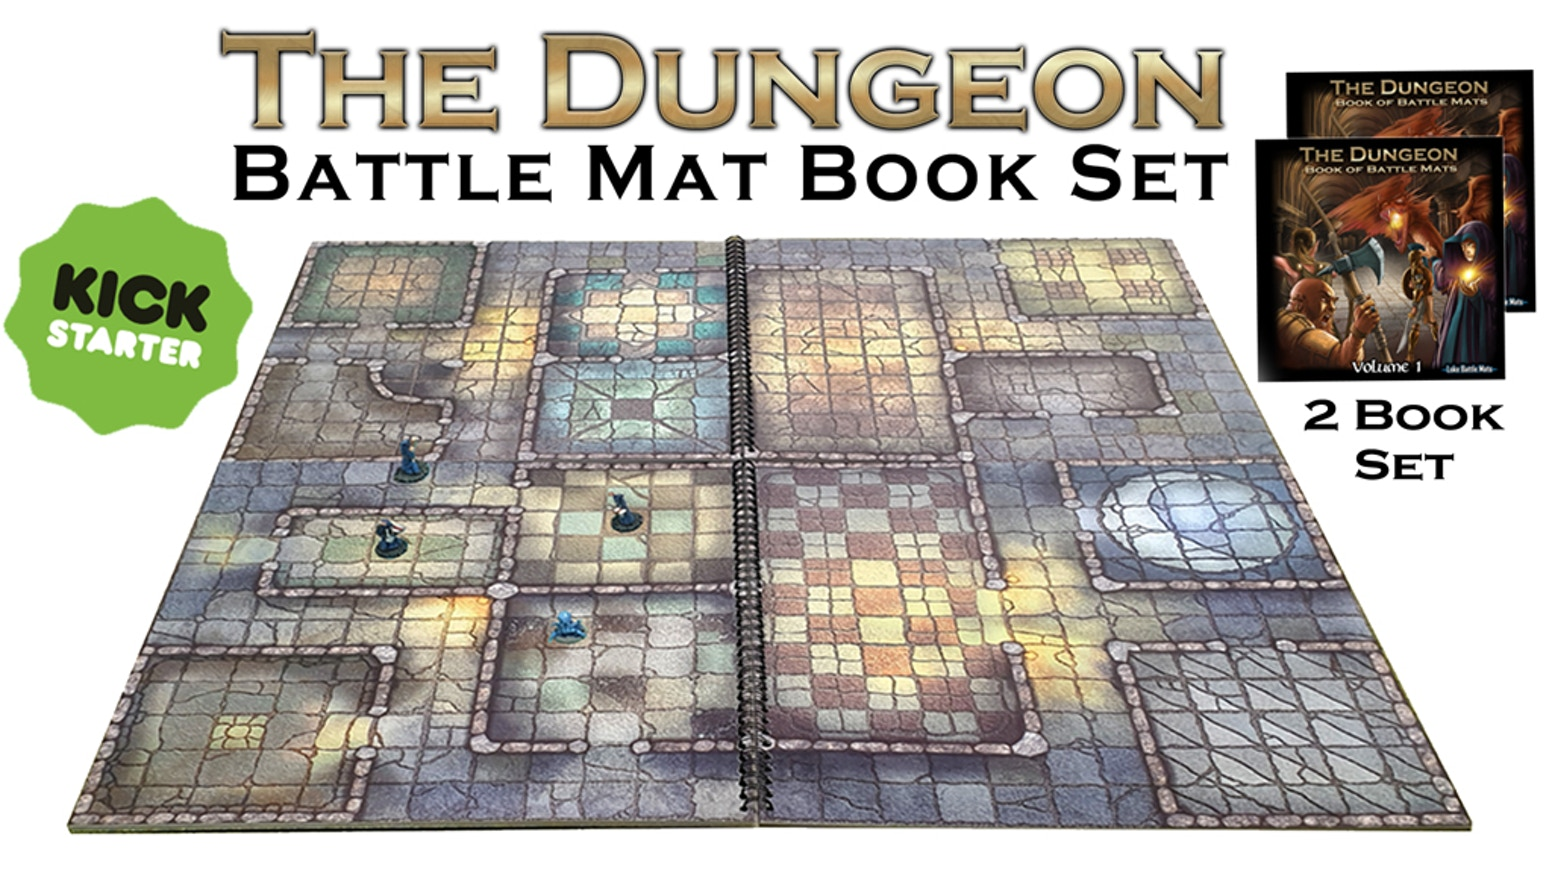 The Dungeon - Set of 2 Modular Books of Battle Mats for RPG by